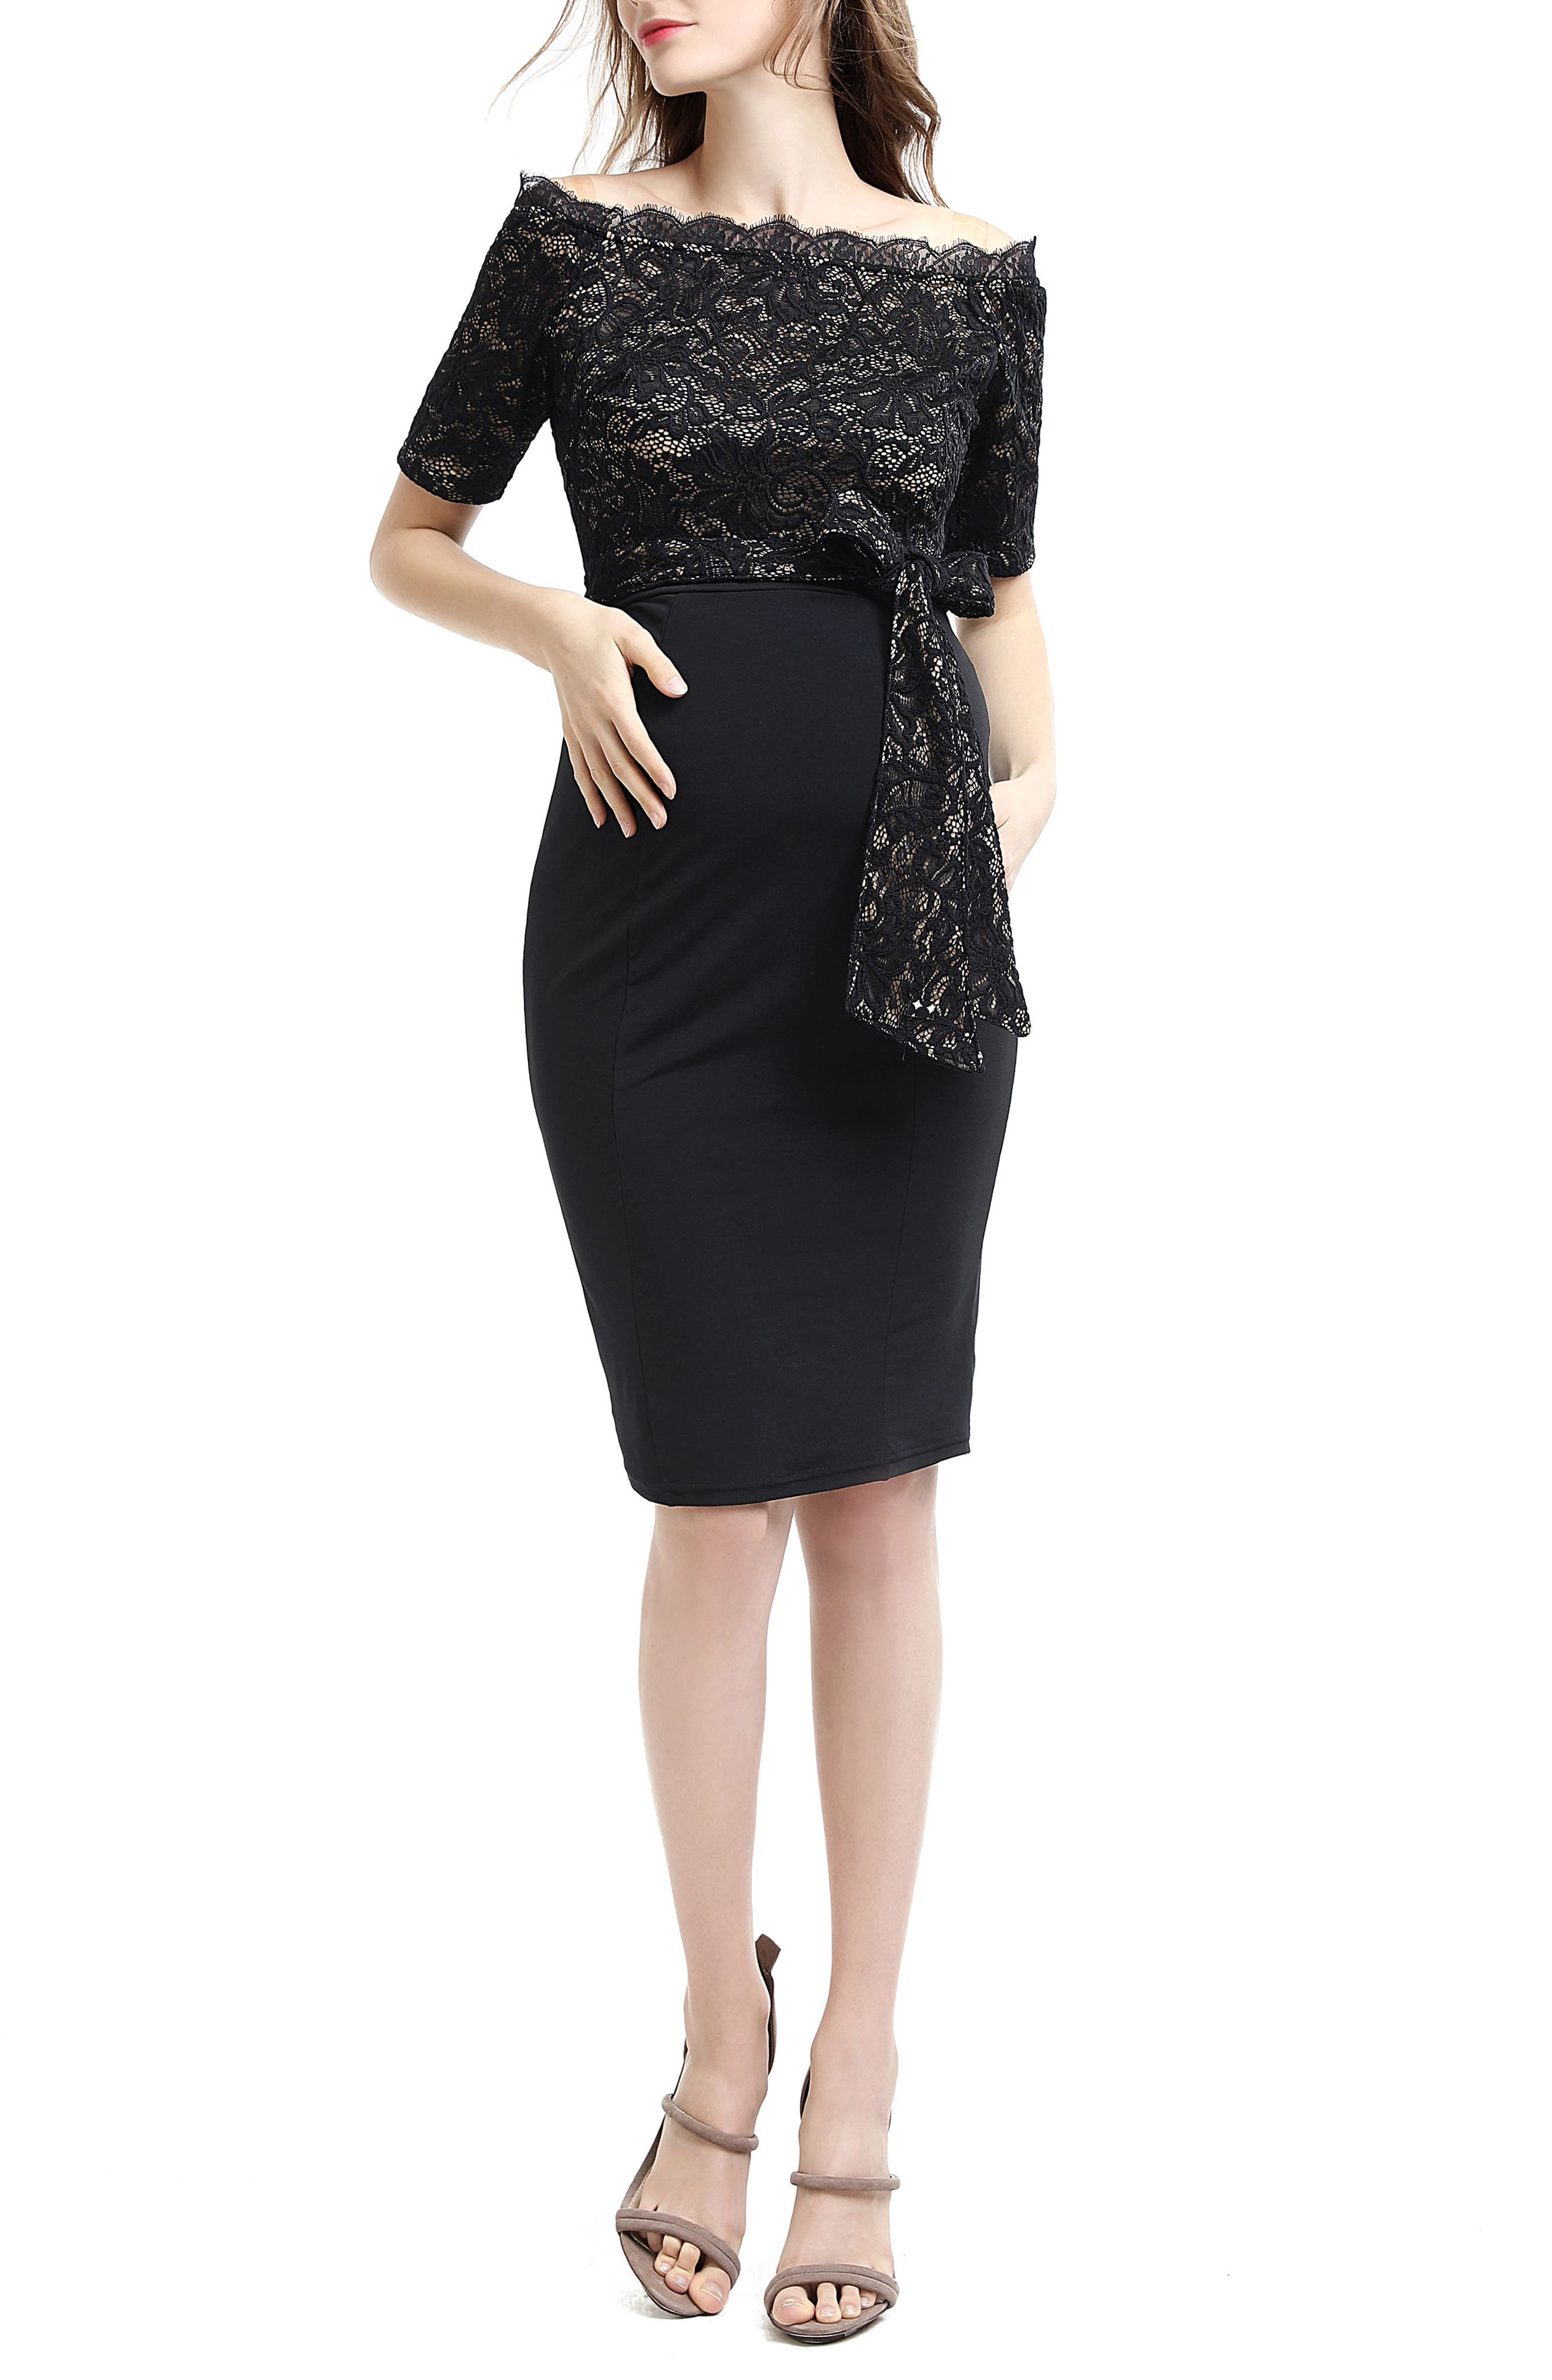 Kimi And Kai Madeline Off The Shoulder Maternity Dress, Black